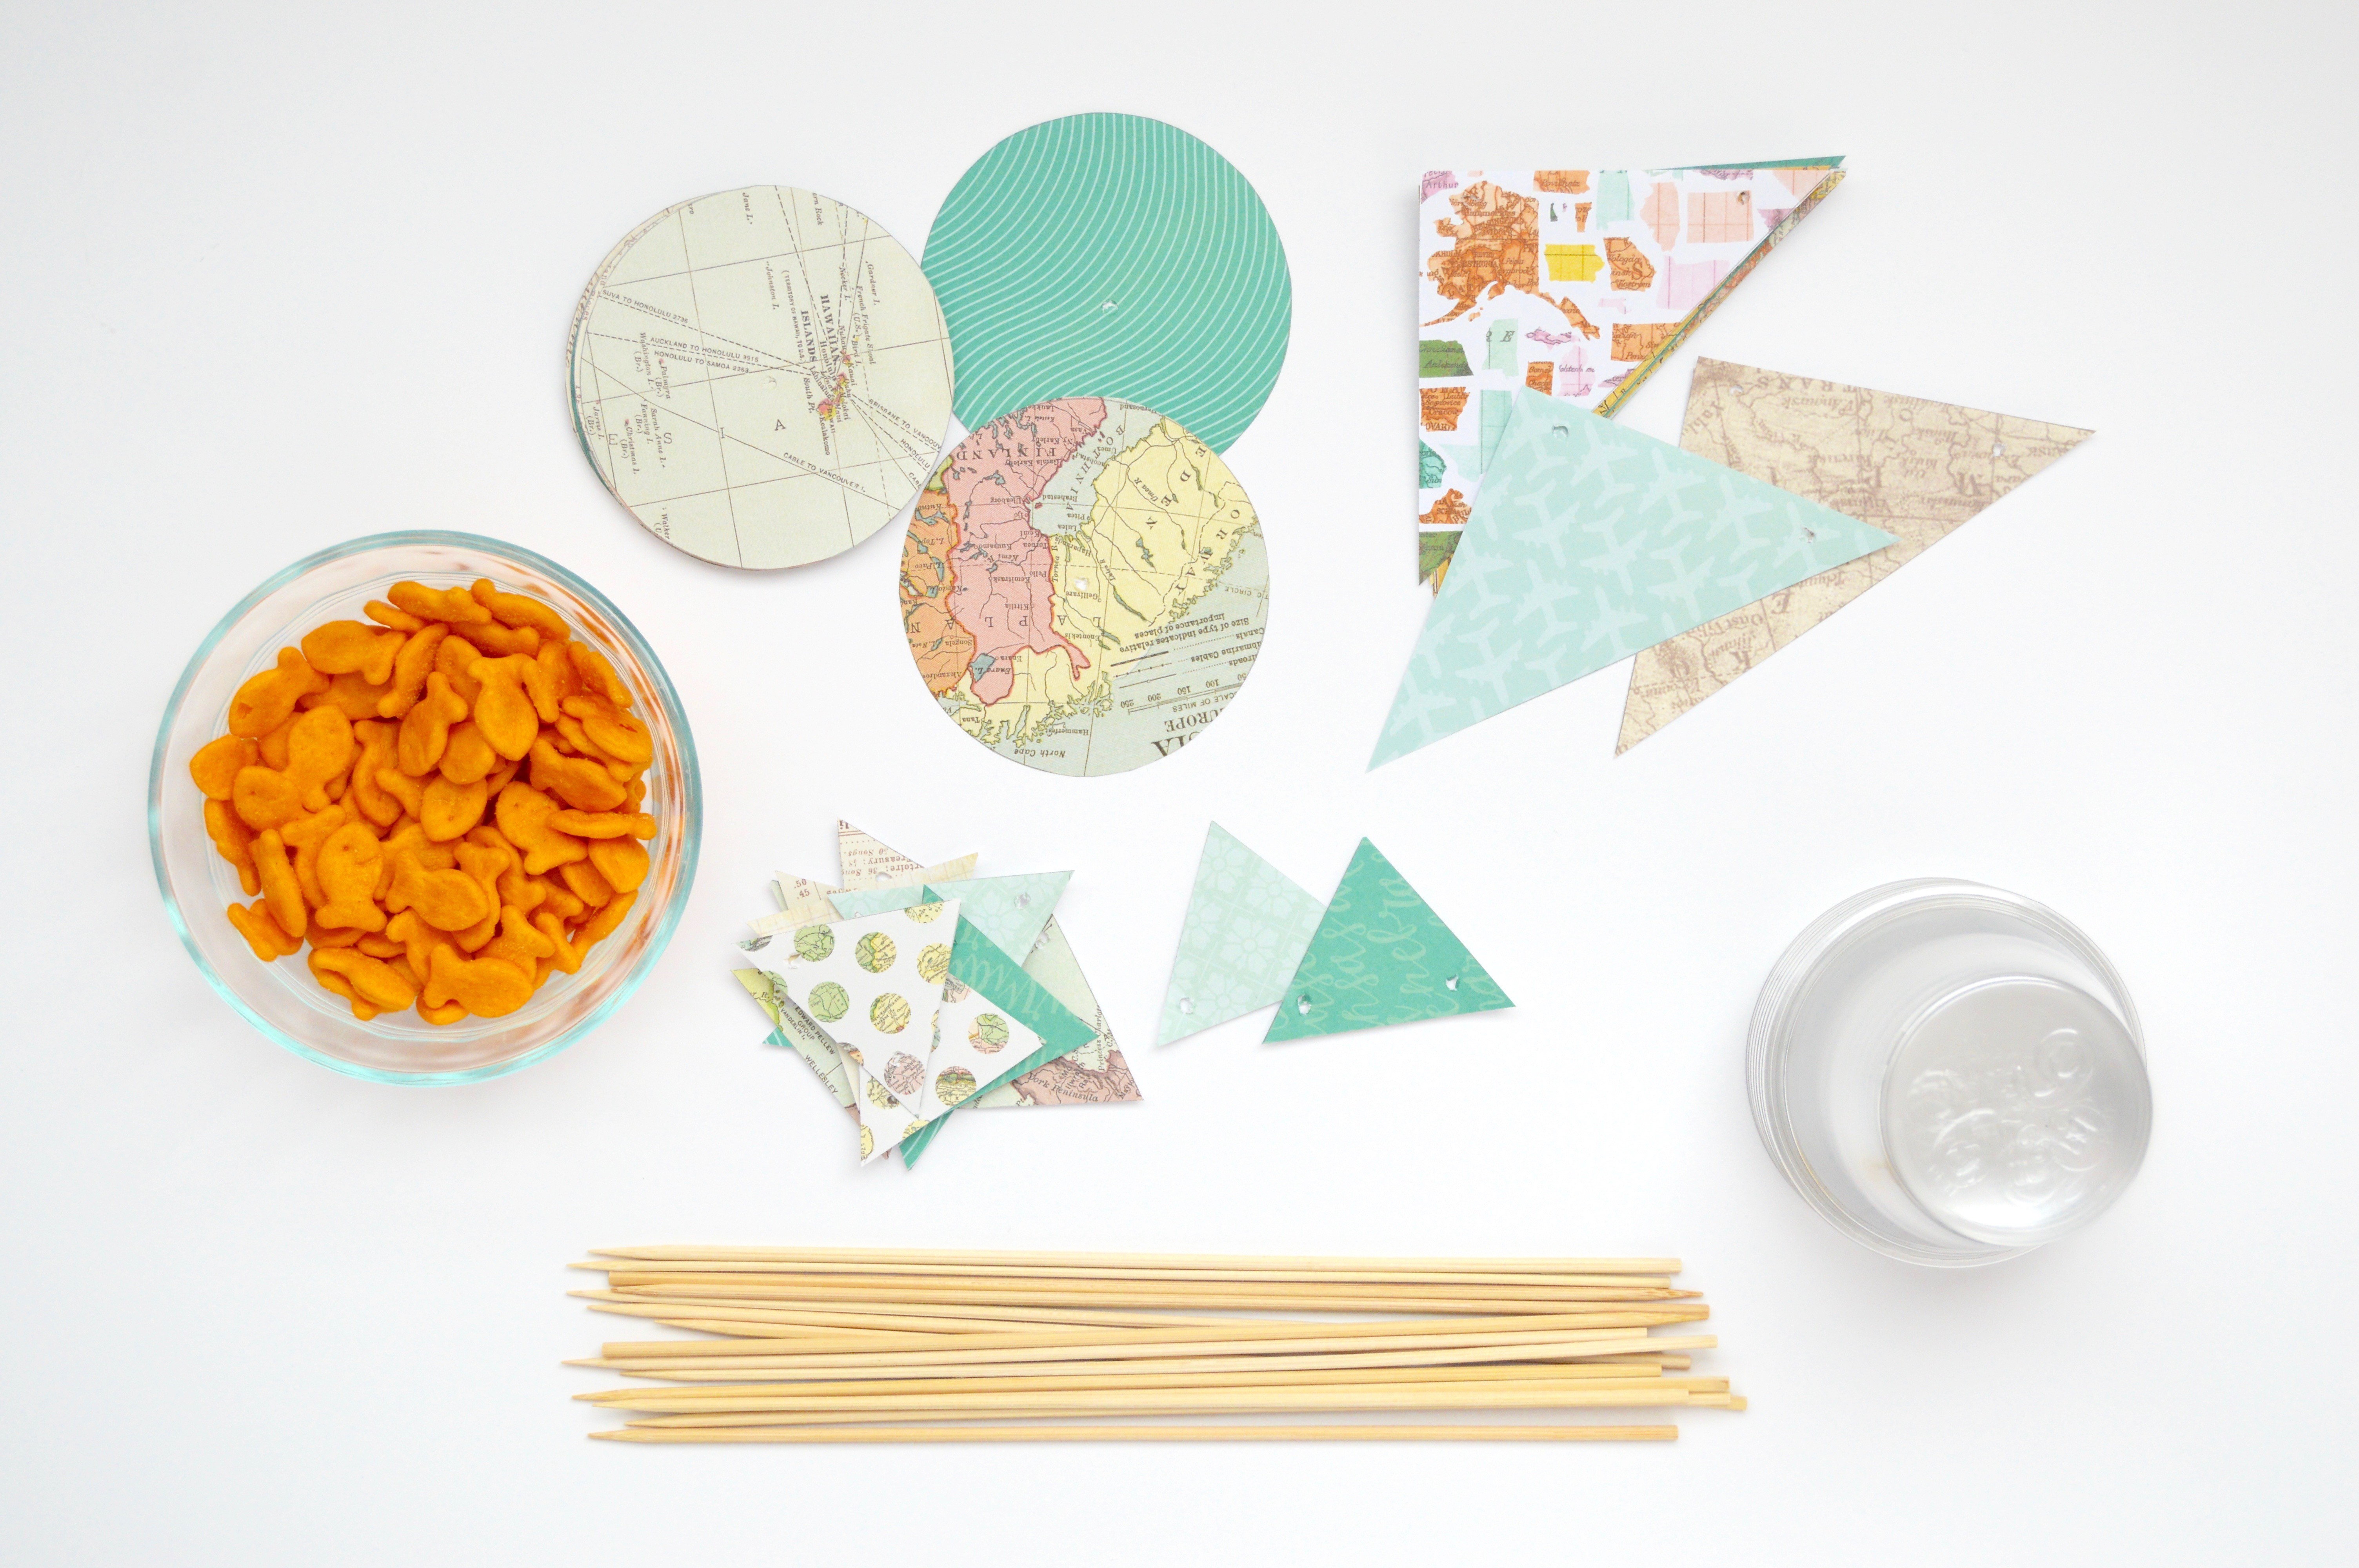 Supplies needed for this craft. Tutorial for how to make Goldfish sailboat party favors for a baby shower, bridal shower, or party. Cute nautical, sailing, travel, + adventure theme ideas.